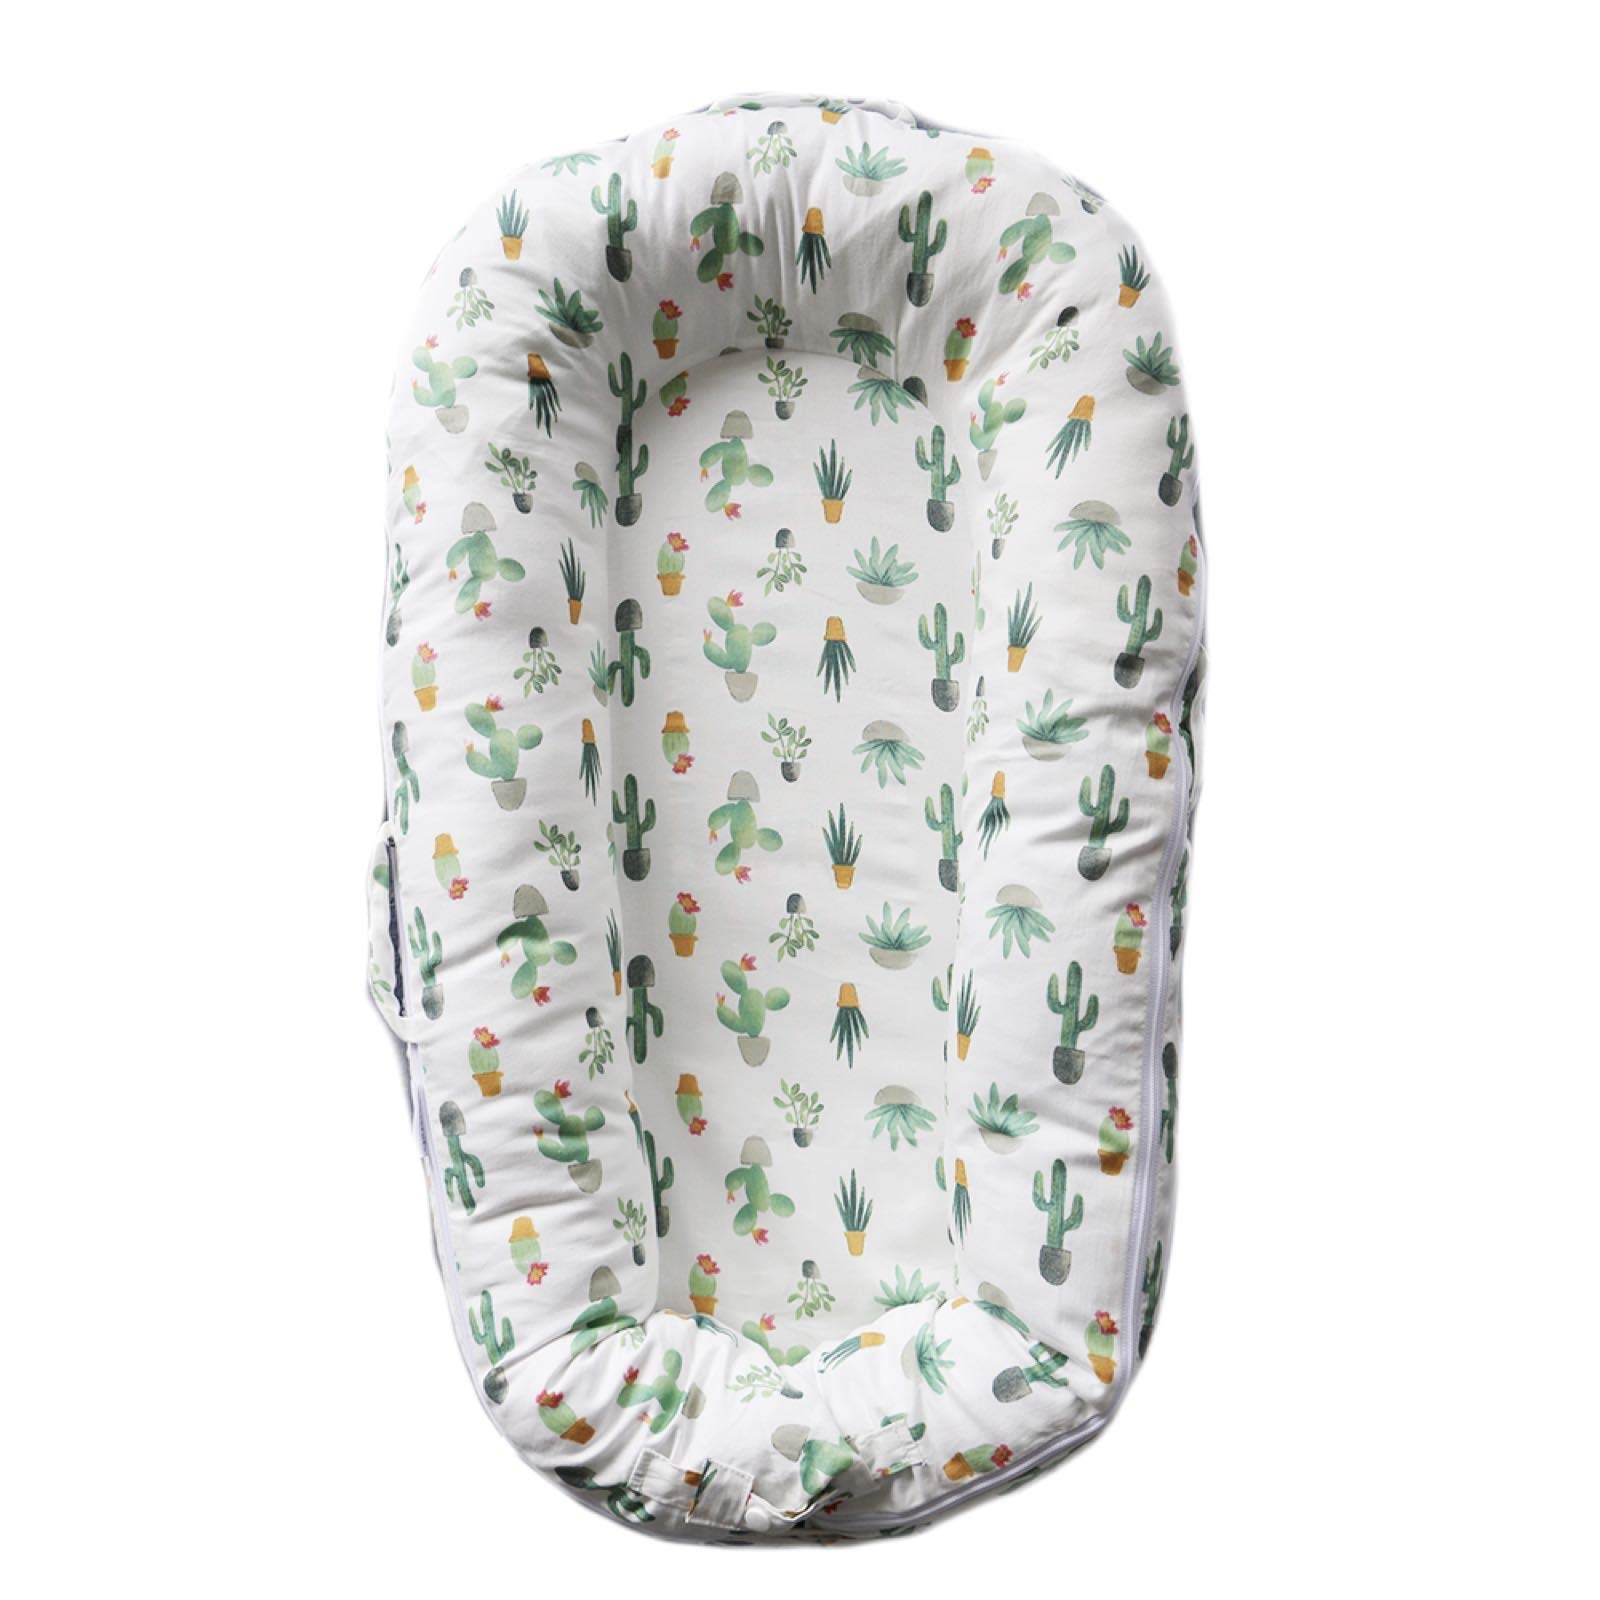 SimpleTot Baby Nest Sleep Pod Replacement Extra Cover ONLY (Fits Dockatot Deluxe+) (Cactus) by SimpleTot